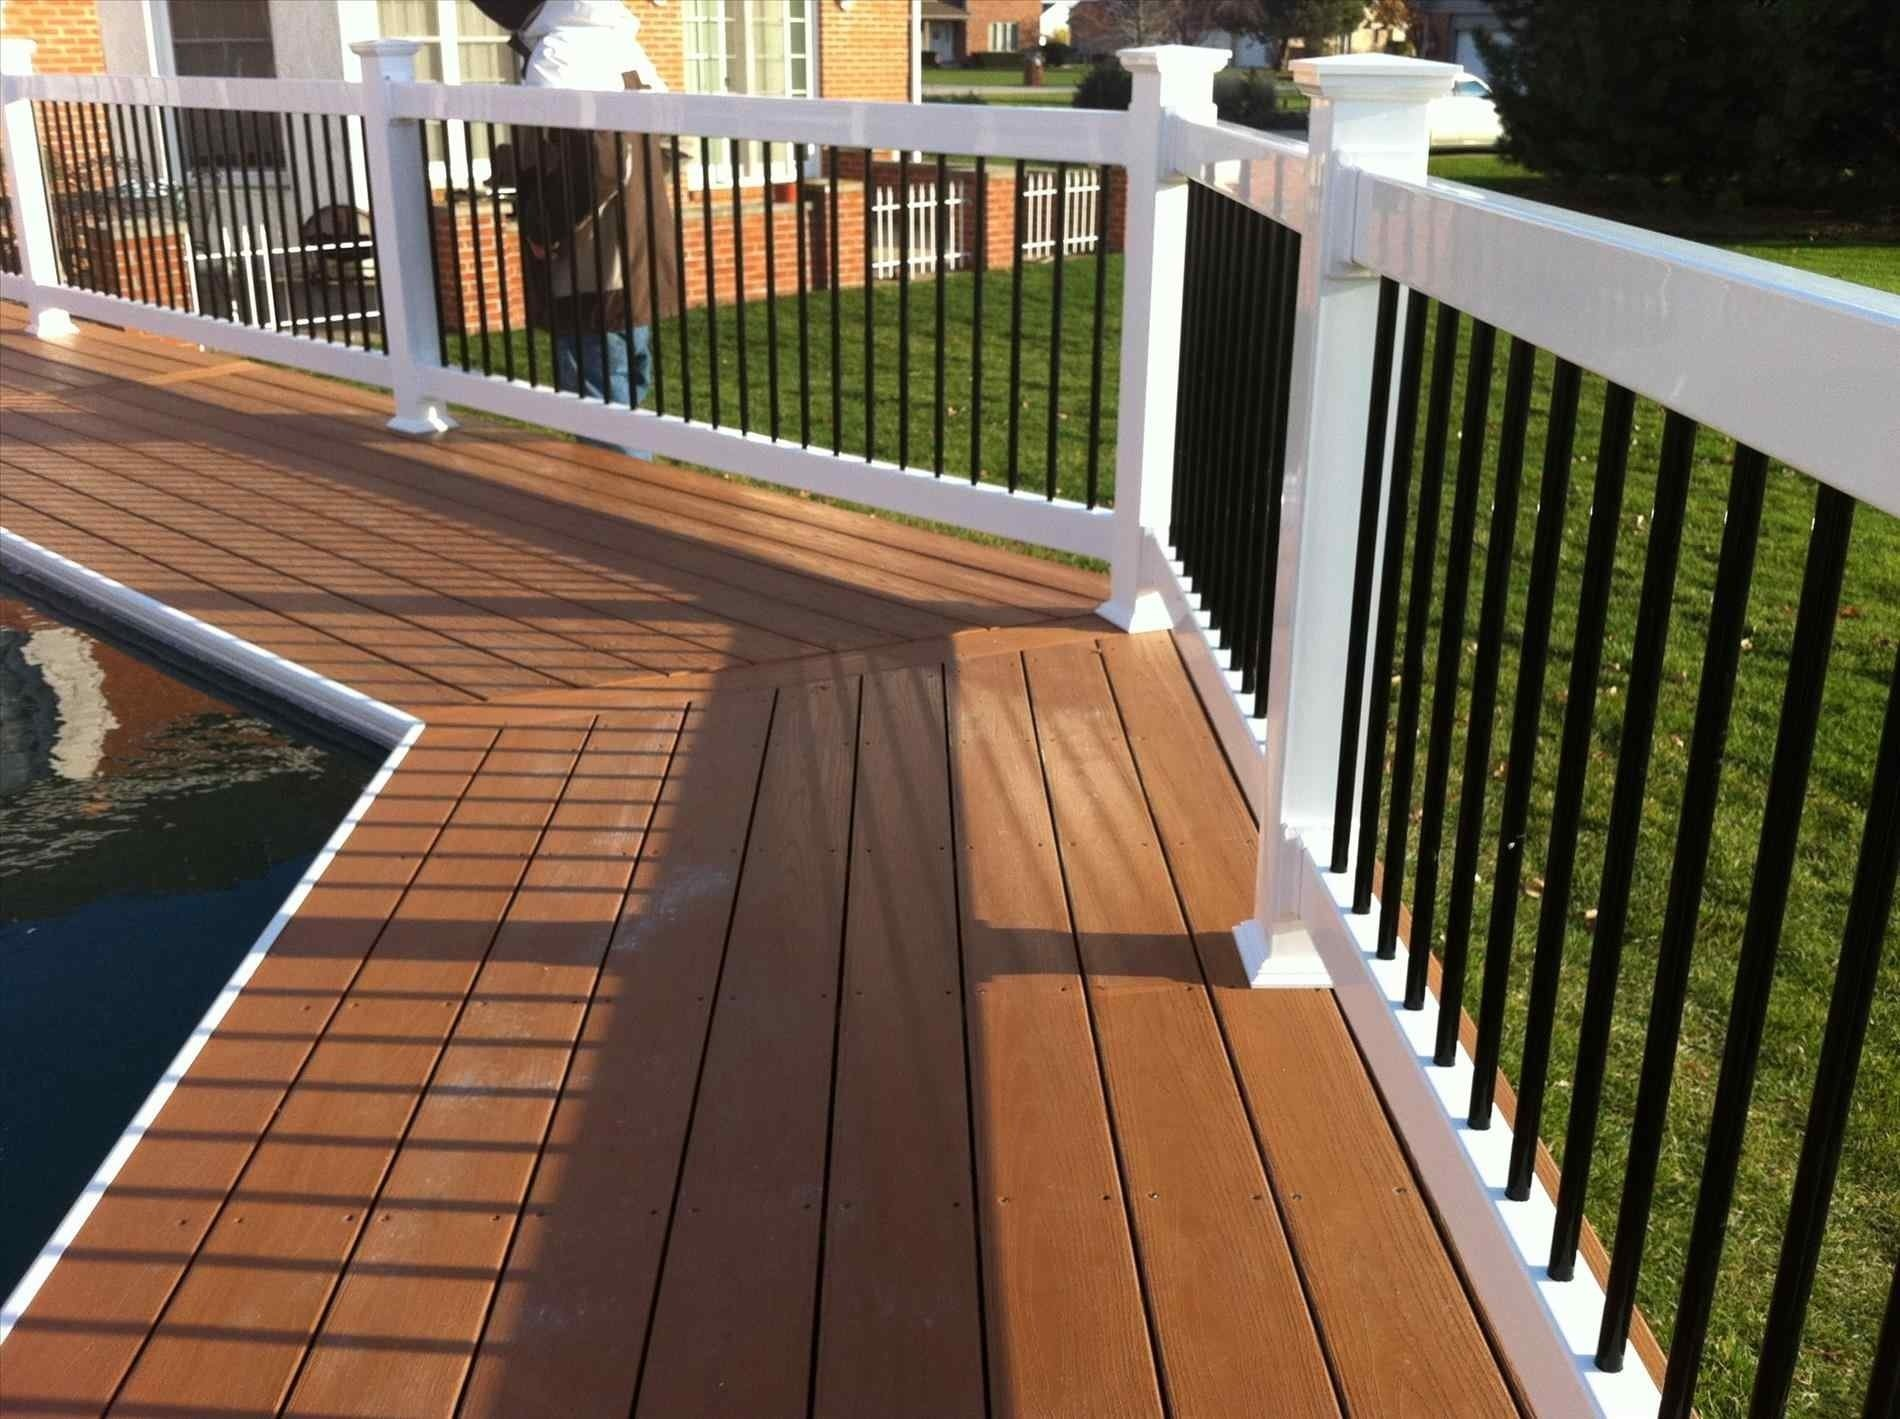 10 Spectacular Two Tone Deck Stain Ideas the images collection of st two tone deck color ideas louis deck 2021